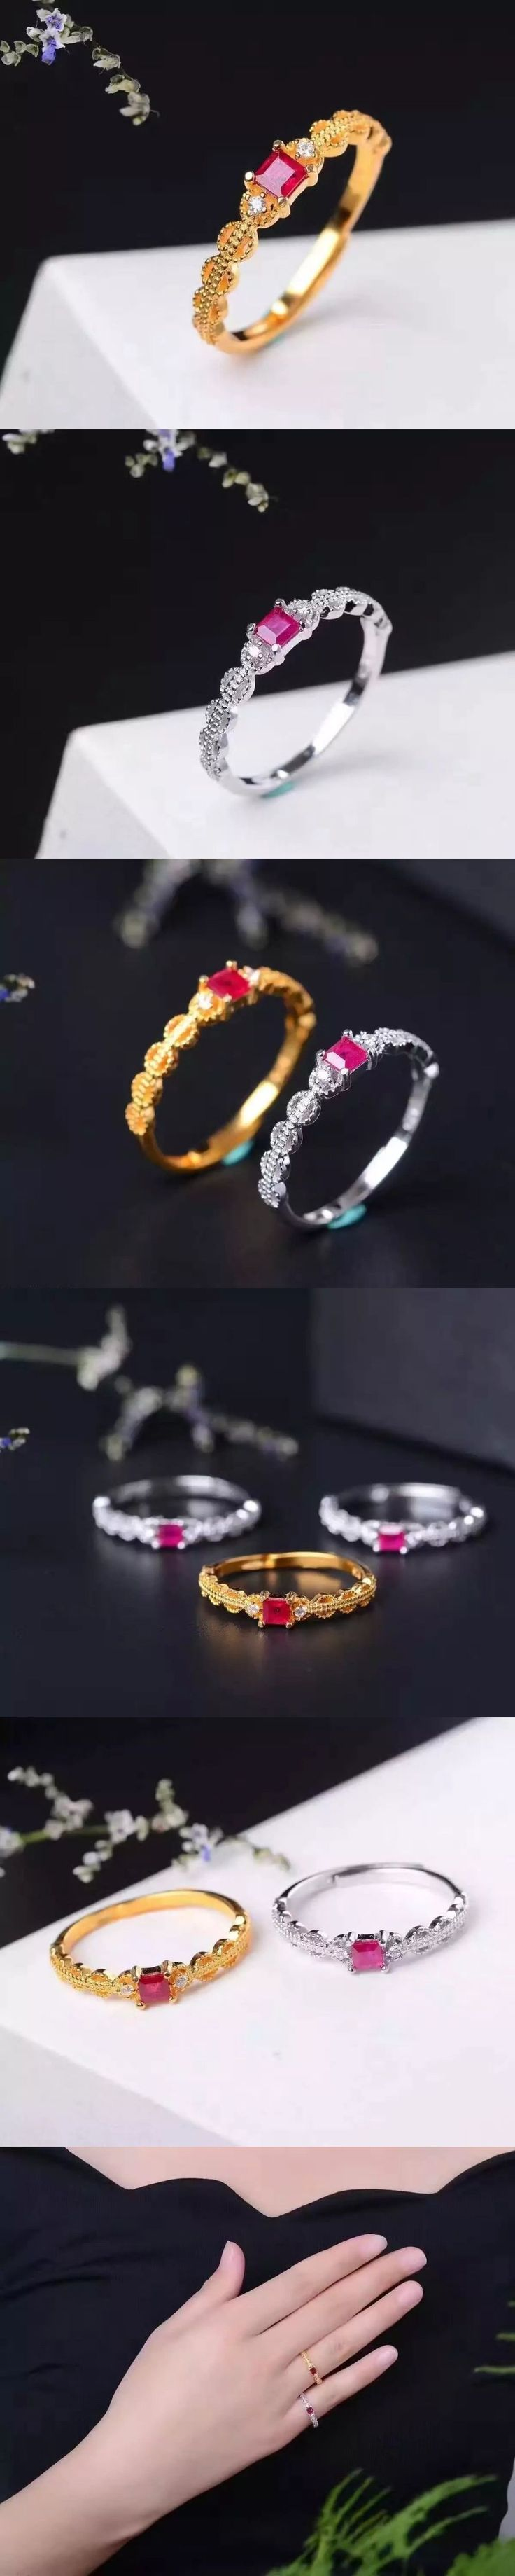 925 sterling natural Ruby rings opening ring fashion gifts for Wedding Gift Fine Jewelry Playful style j030301agh #fashionjewelry